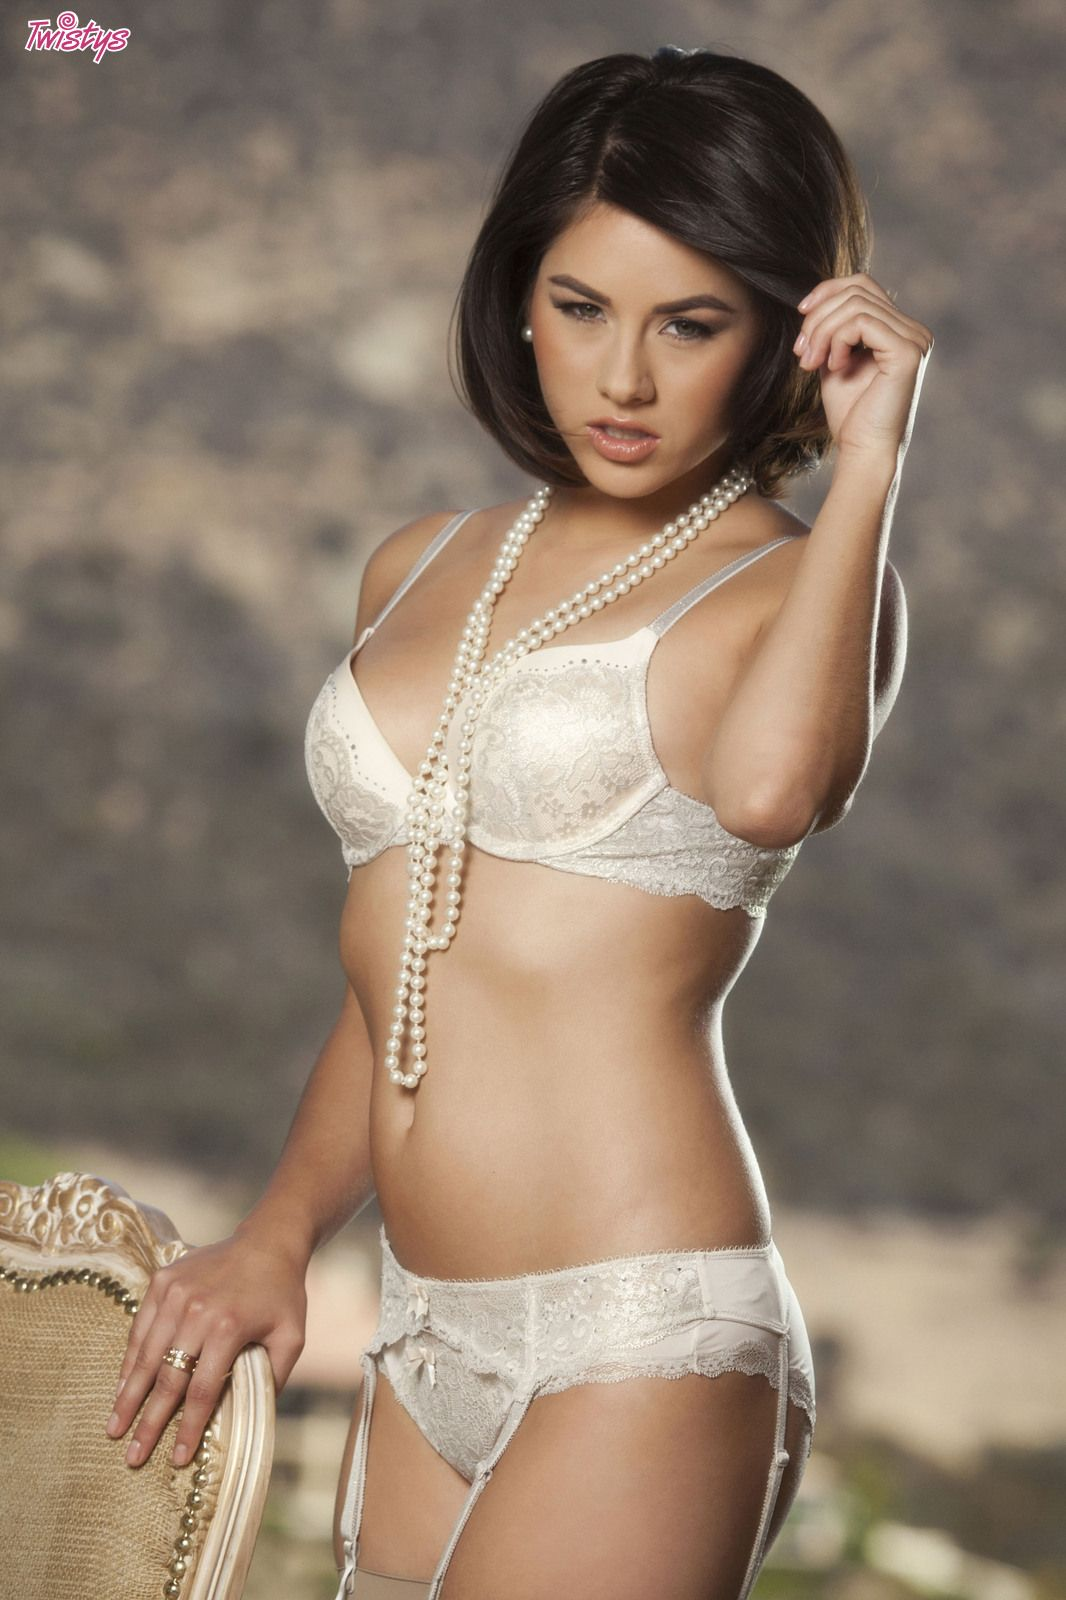 jennings hot Shyla white